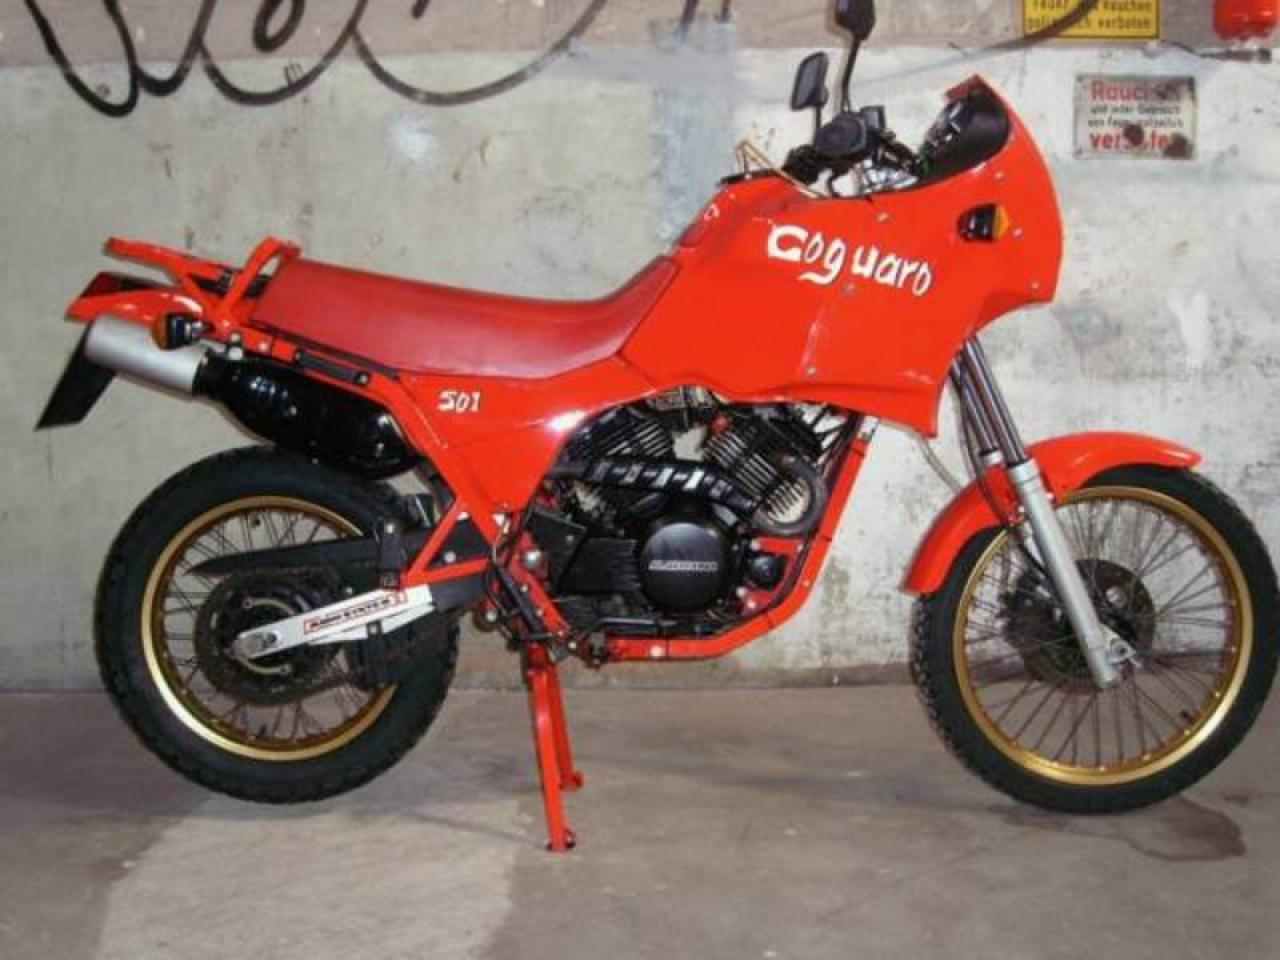 Moto Morini 501 Coguaro 1989 wallpapers #140275